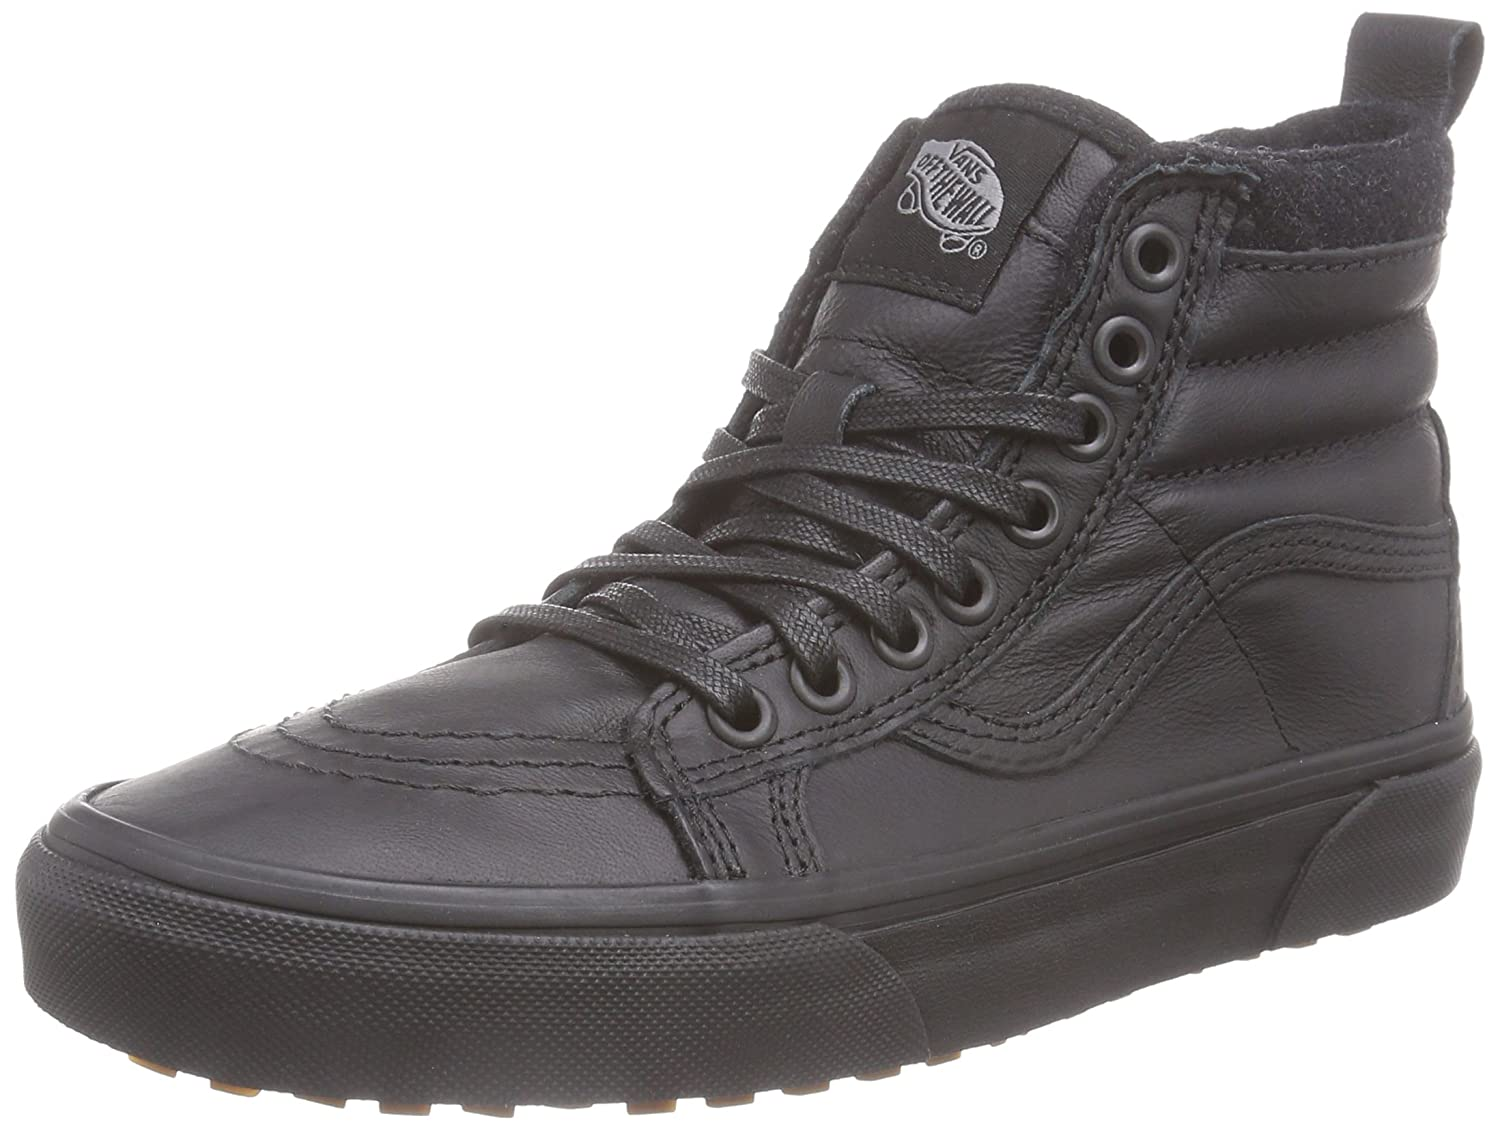 Vans Sk8-Hi Unisex Casual High-Top Skate Shoes, Comfortable and Durable in Signature Waffle Rubber Sole B00RQNCC82 8 Women / 6.5 Men M US|(Mte) Black/Leather